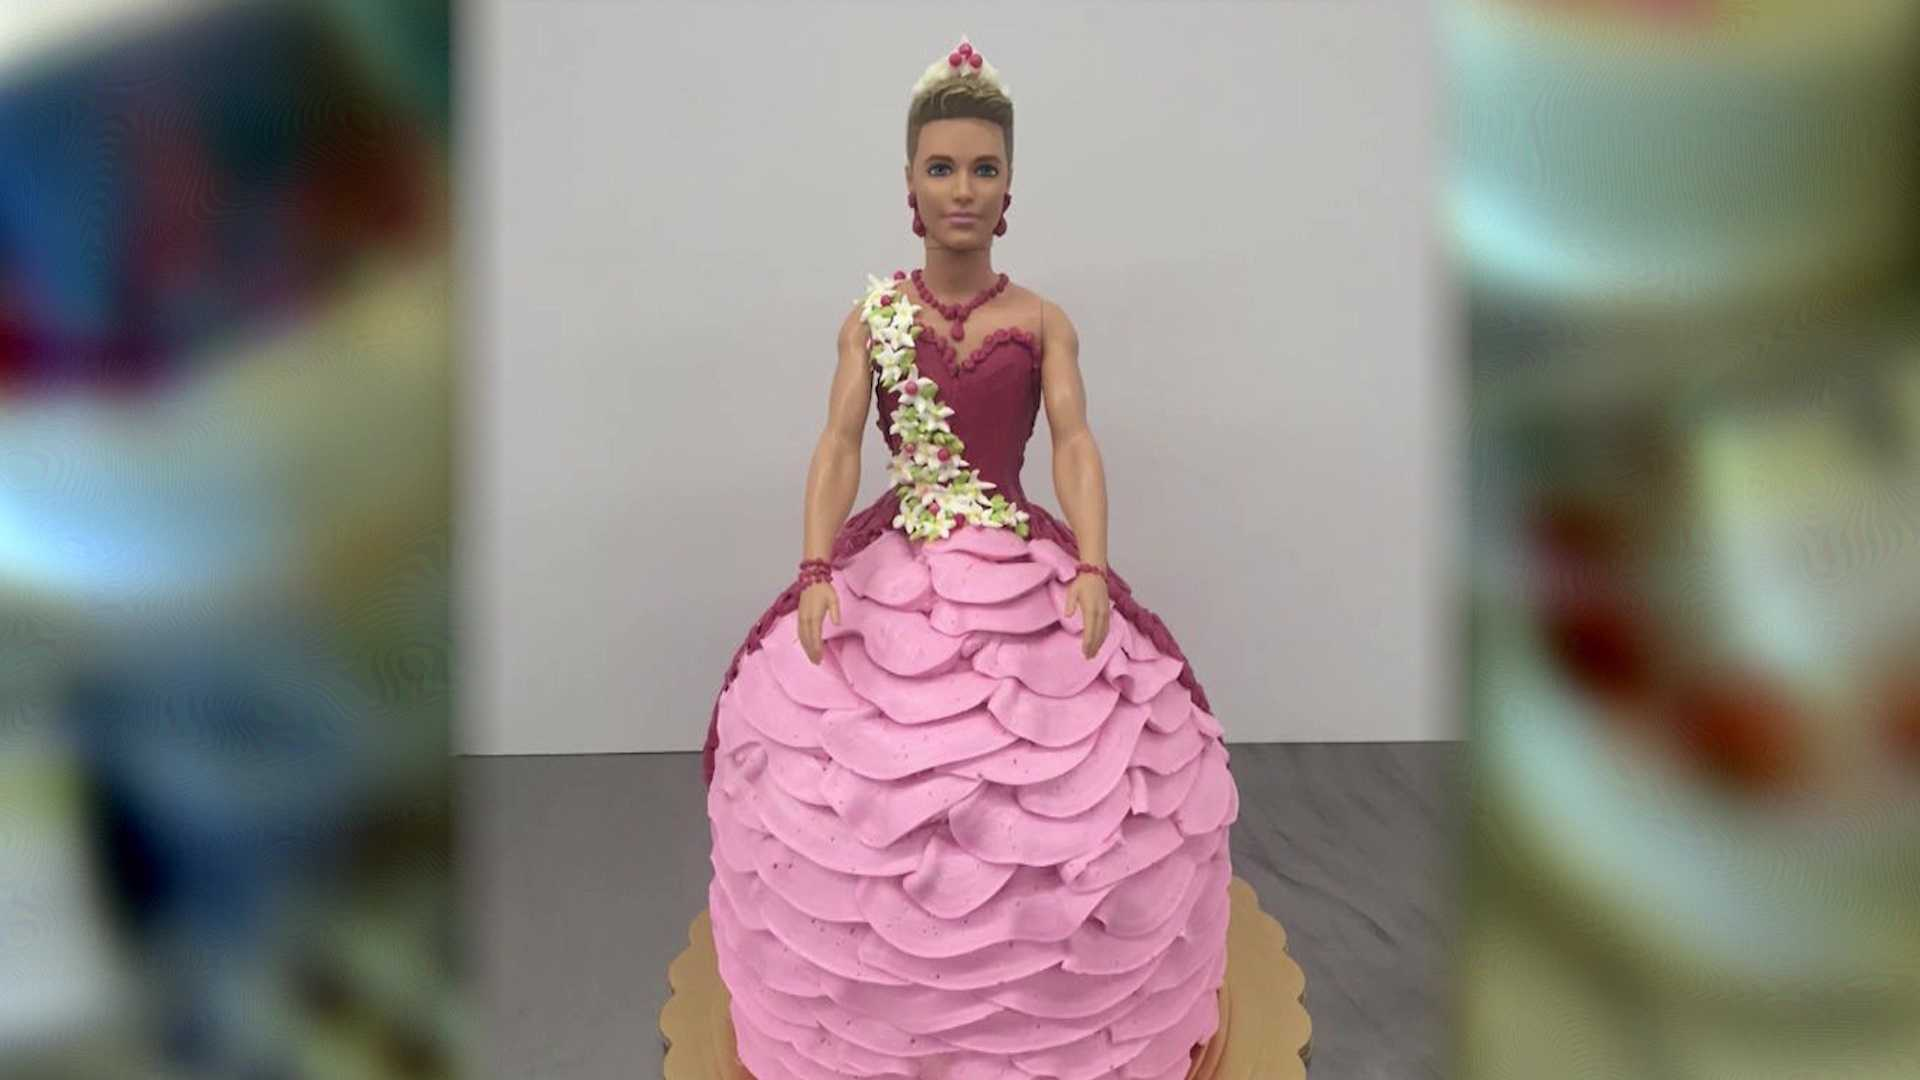 Ken doll cake created by Freeport Bakery in Sacramento.